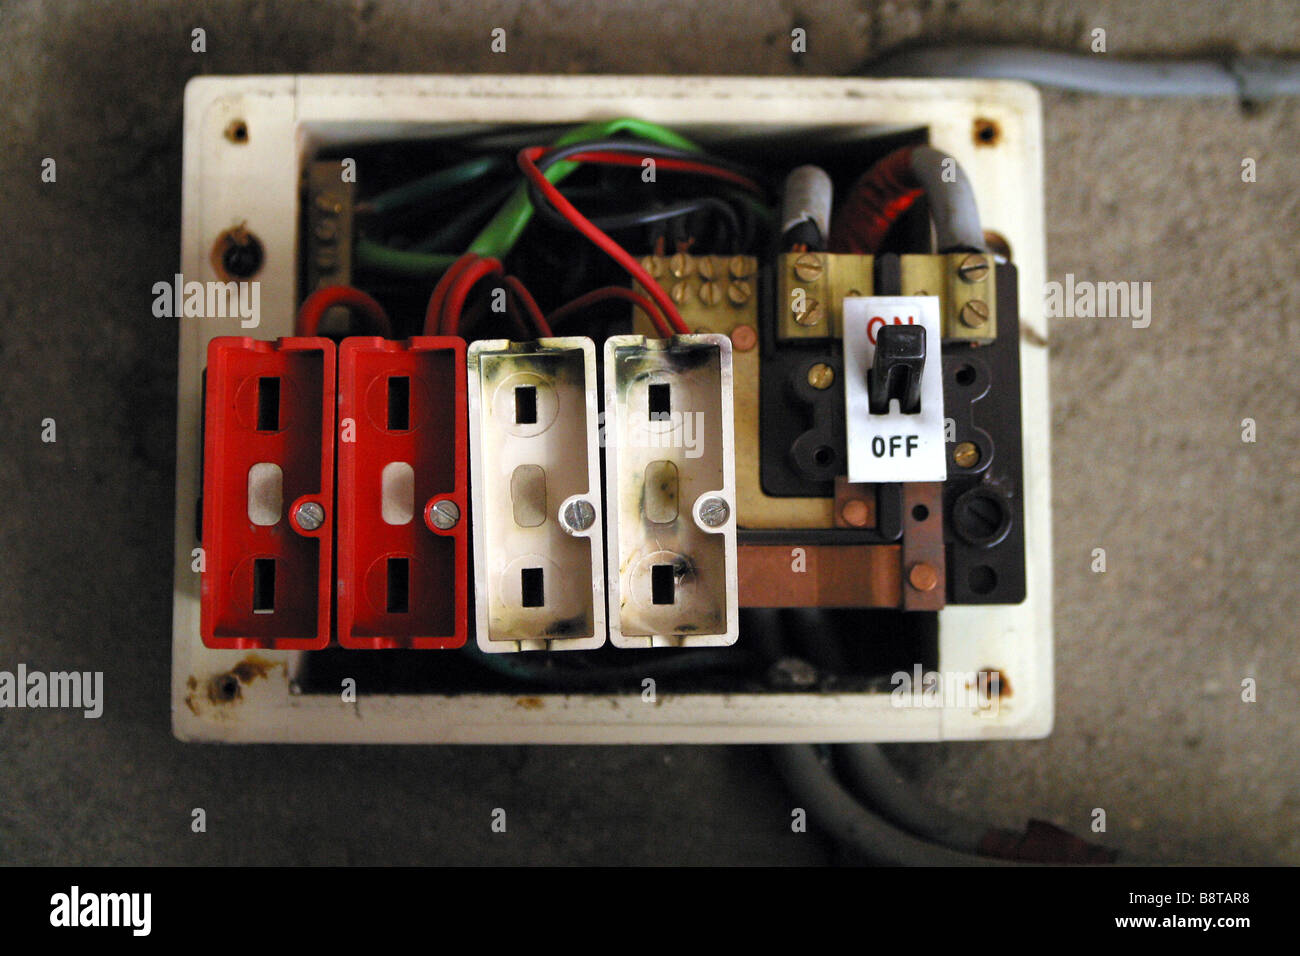 House Fuse Box Wiring Electronic Diagrams Home Built Old Diagram Schematics Electrical Panel